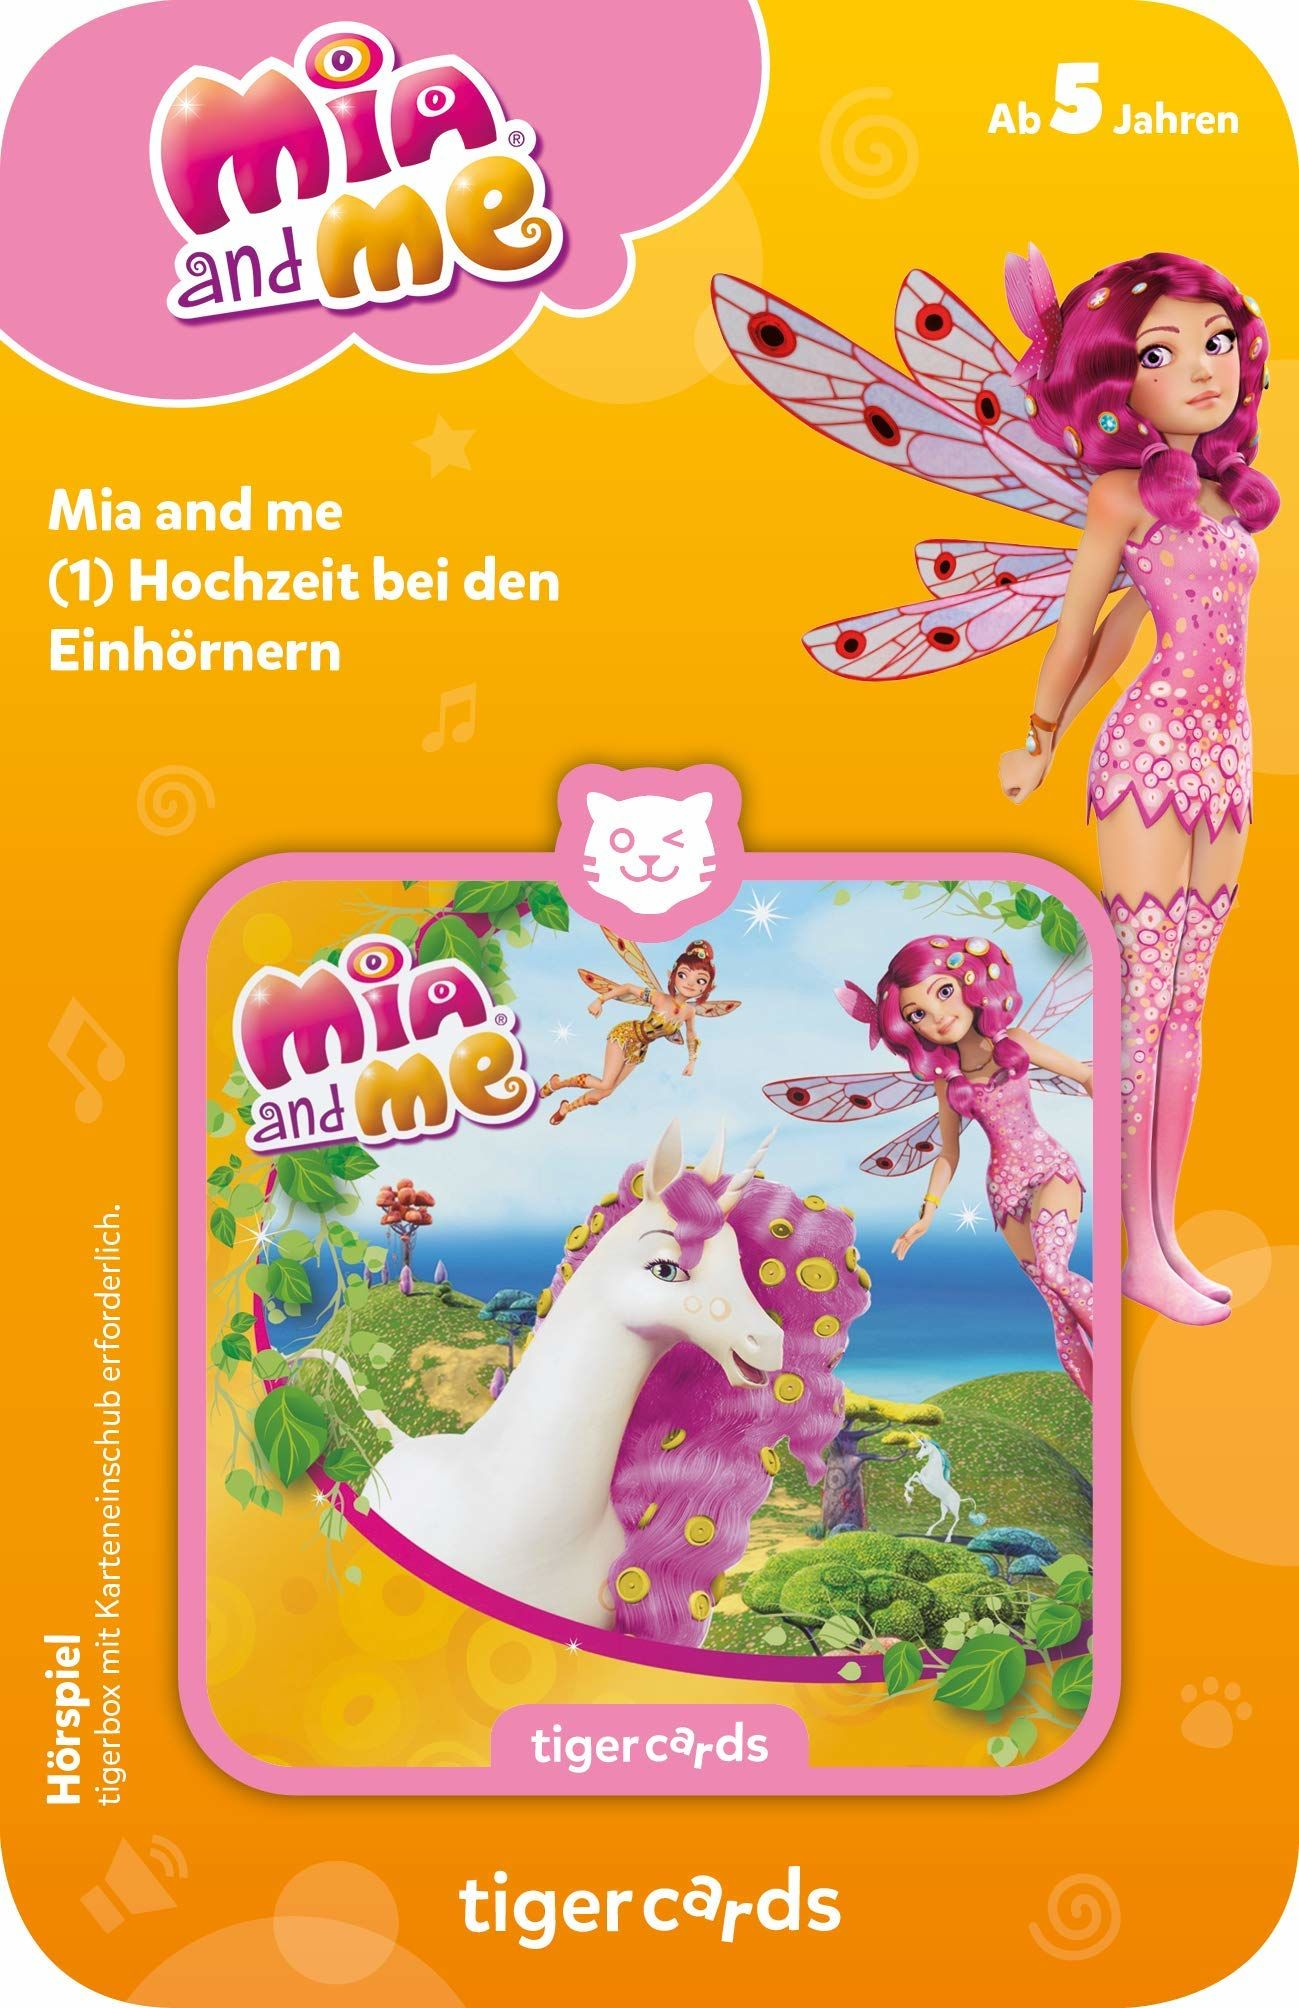 Tiger Media 4143 tigercard-Mia and me-Fokge 2: ślub u jednorożców